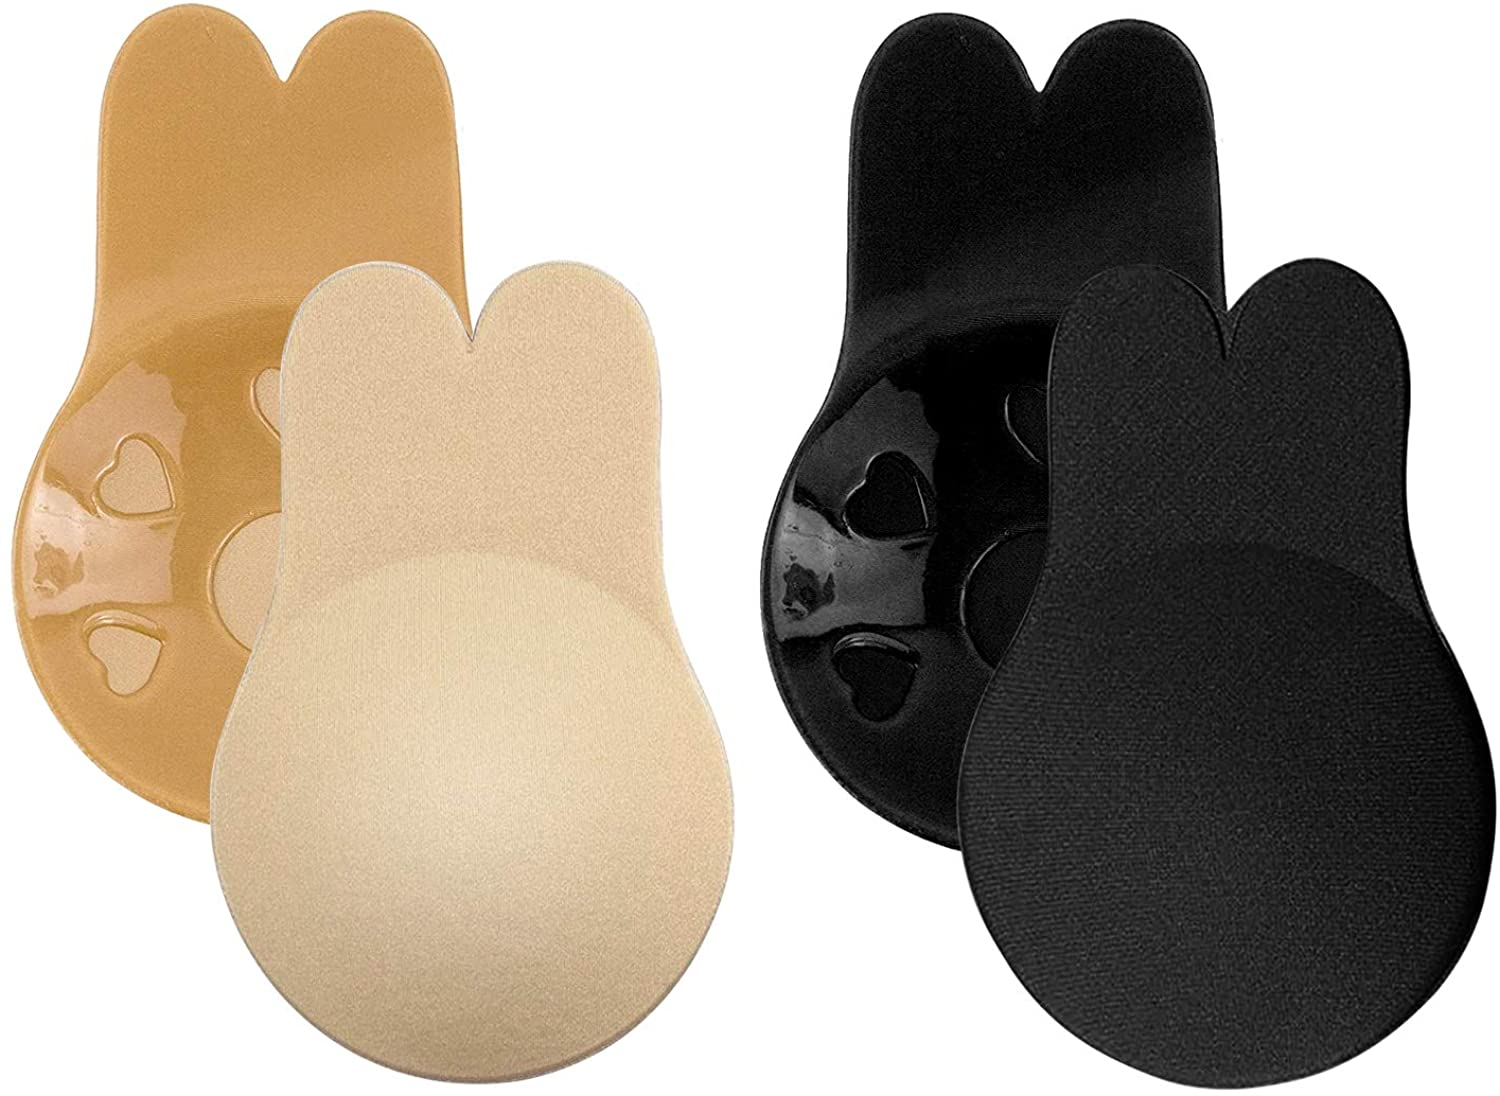 Invisible Bra, Reusable Adhesive Bra 2 Pairs, Strapless Backless Waterproof Bra, Sticky Lift Pasties